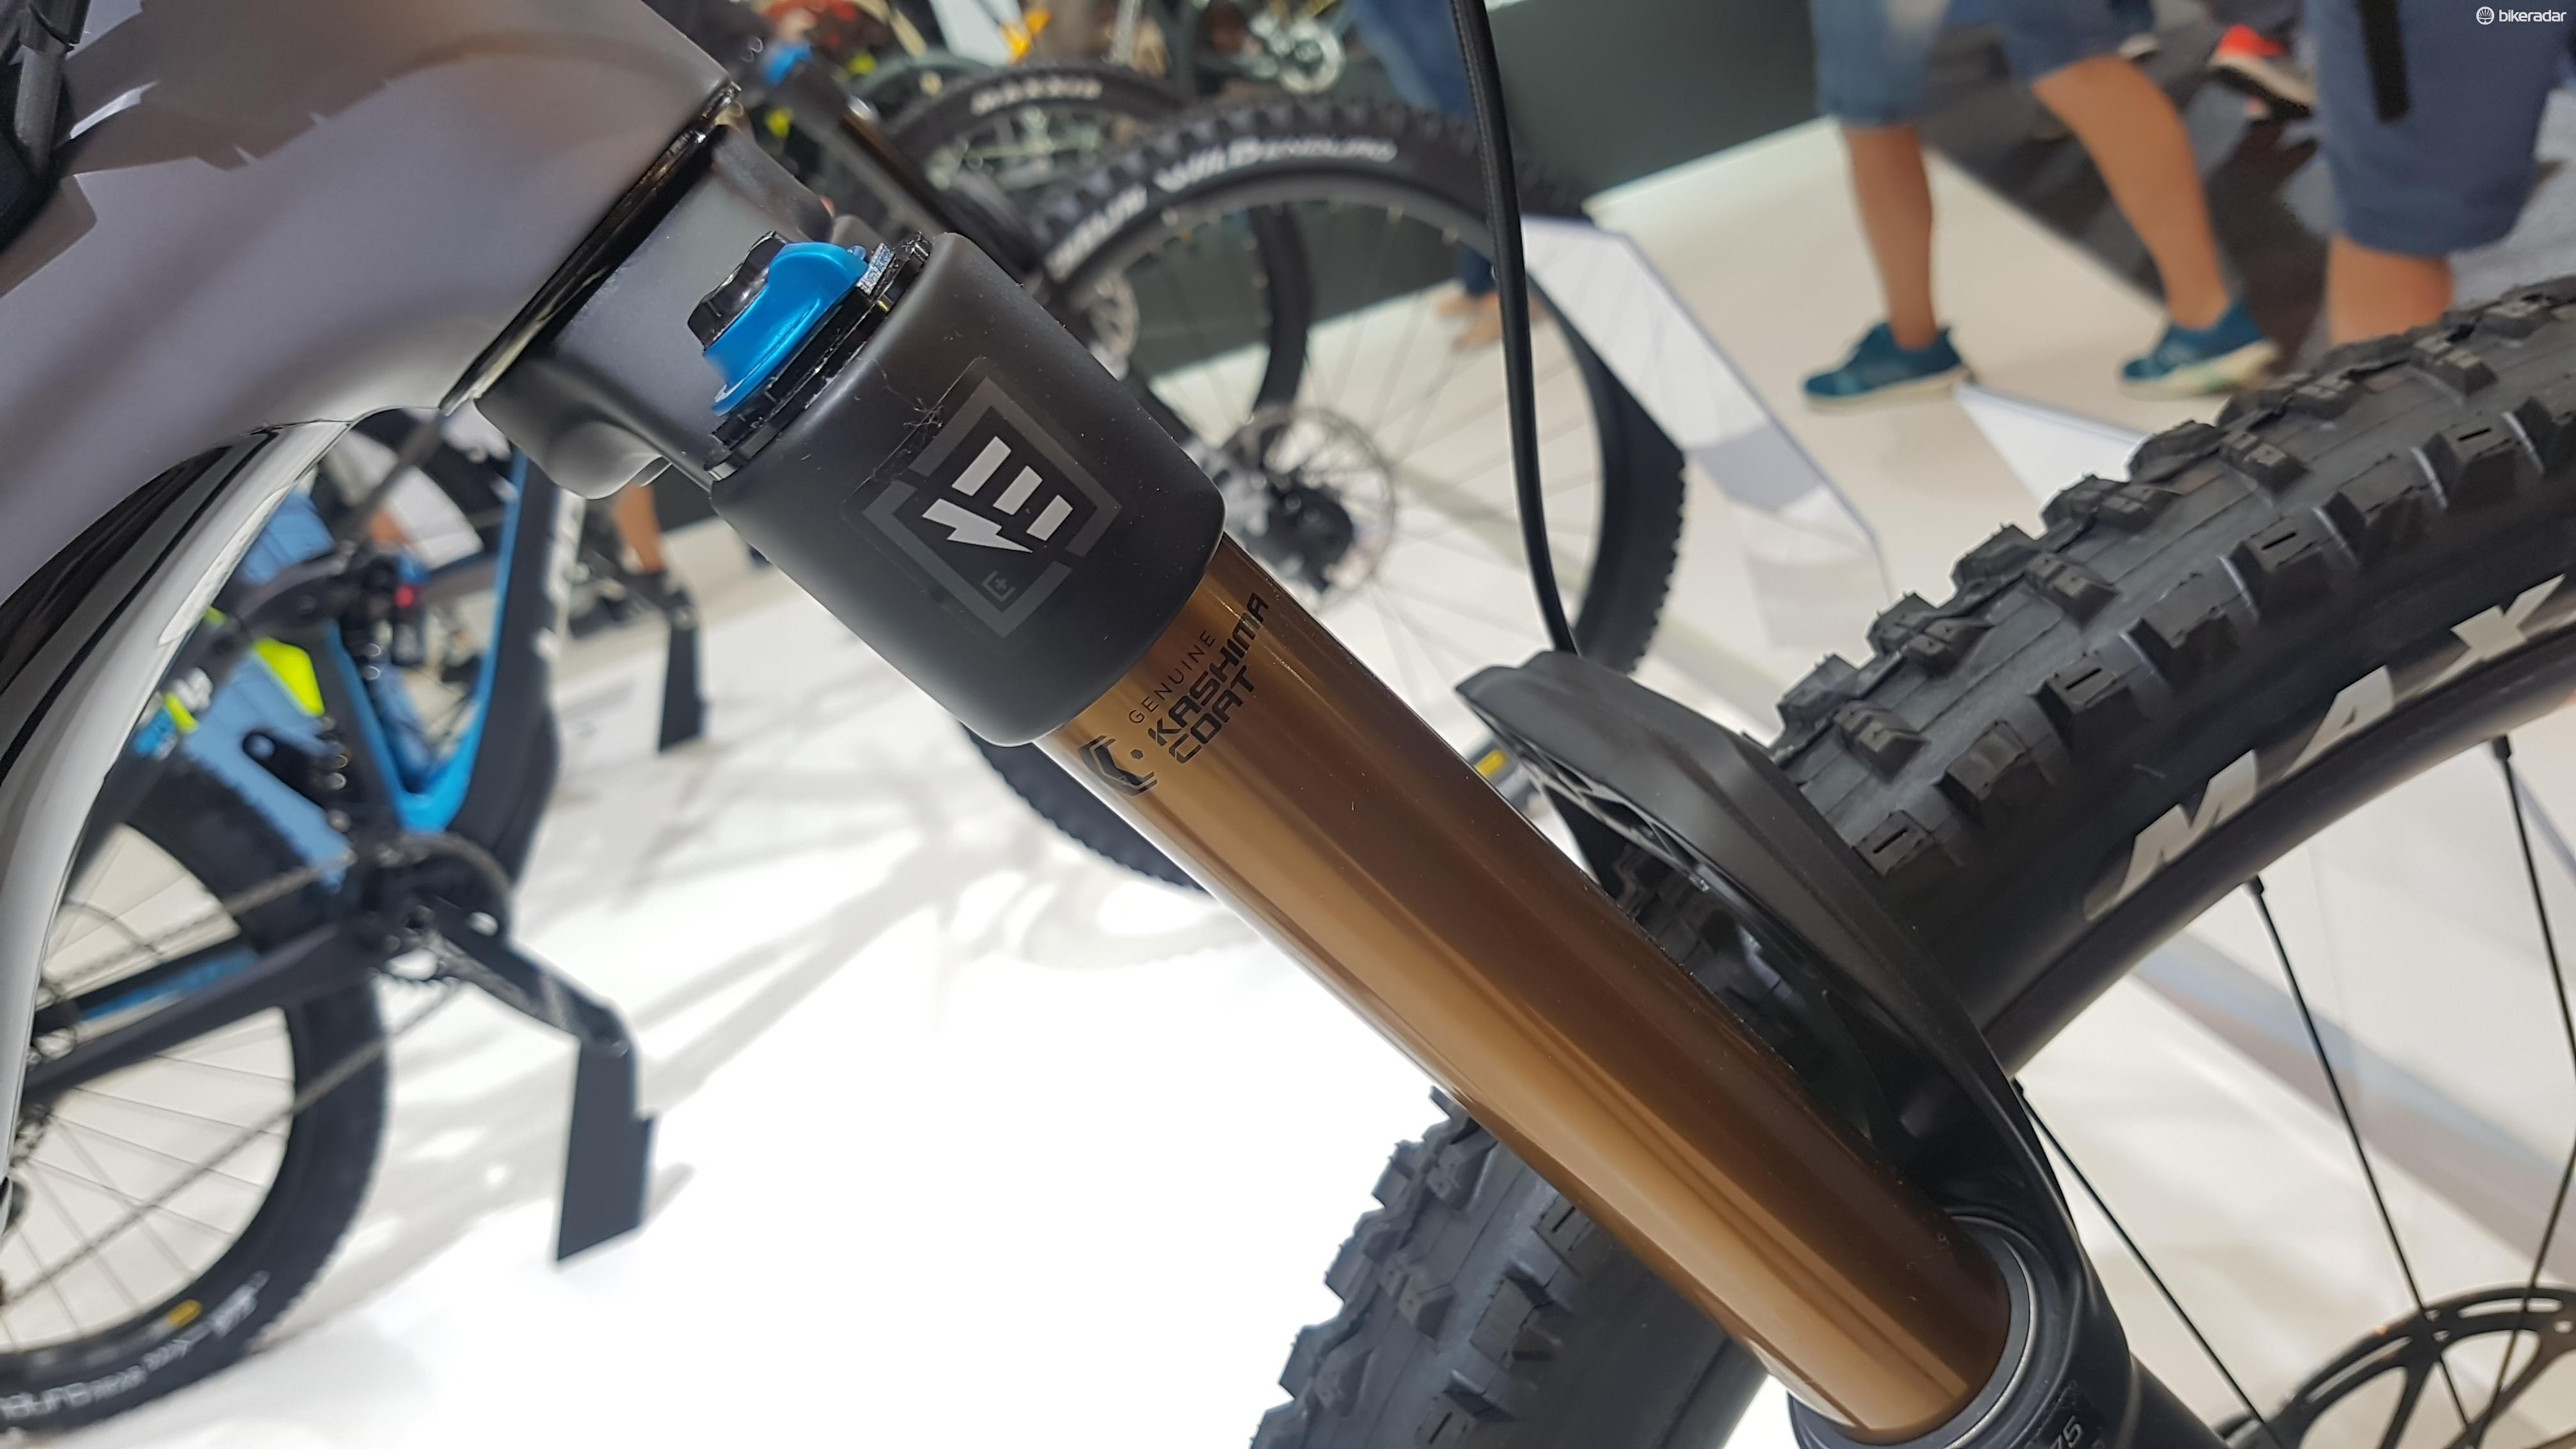 E-bike-specific components on the eZesty